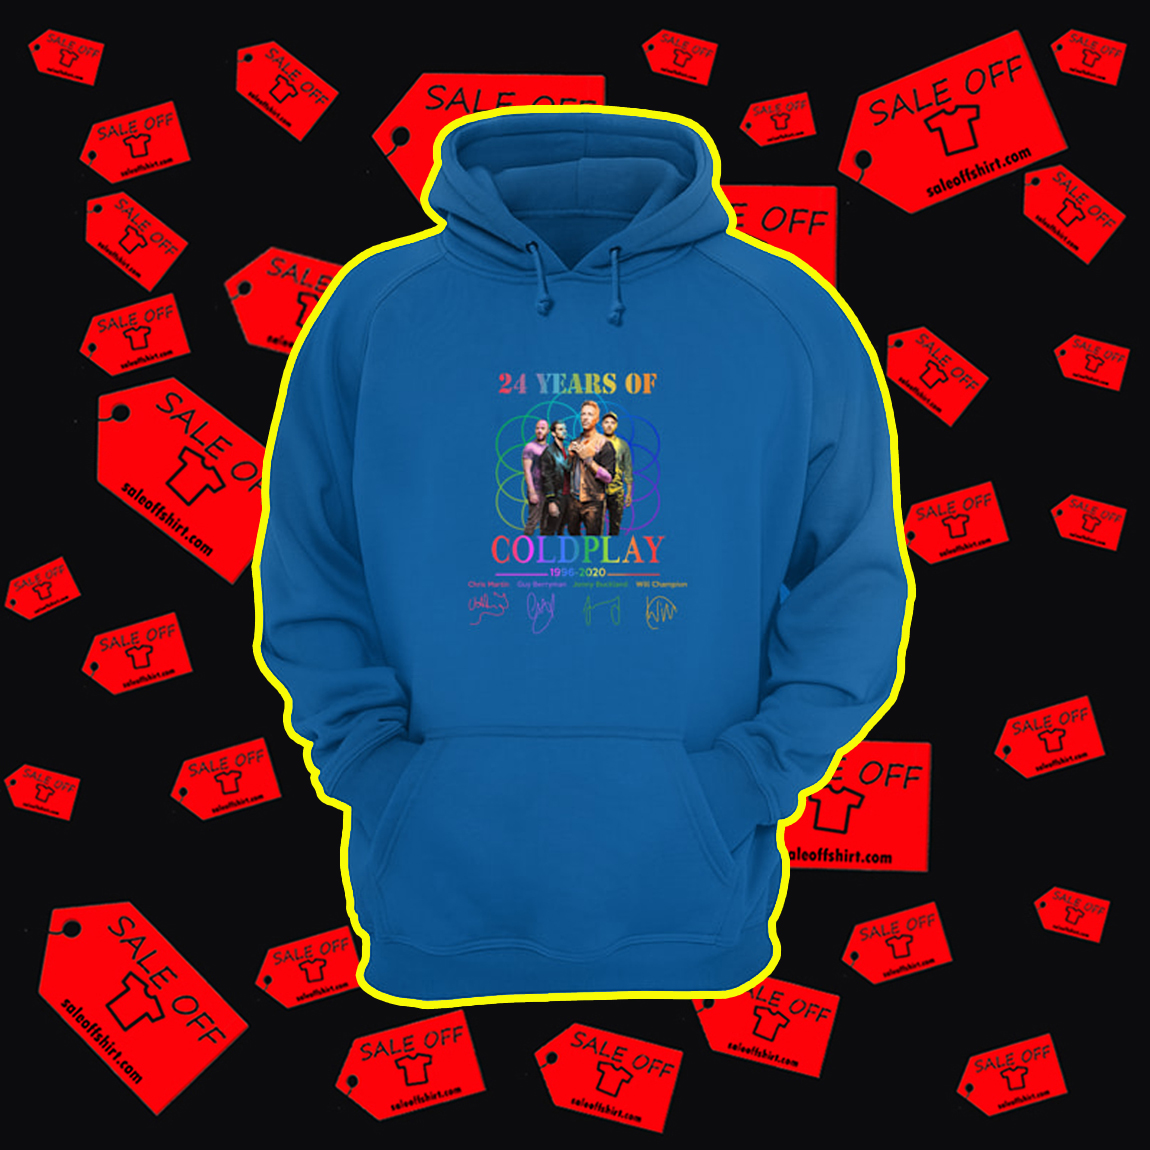 24 Years Of Coldplay 1996 2020 hoodie